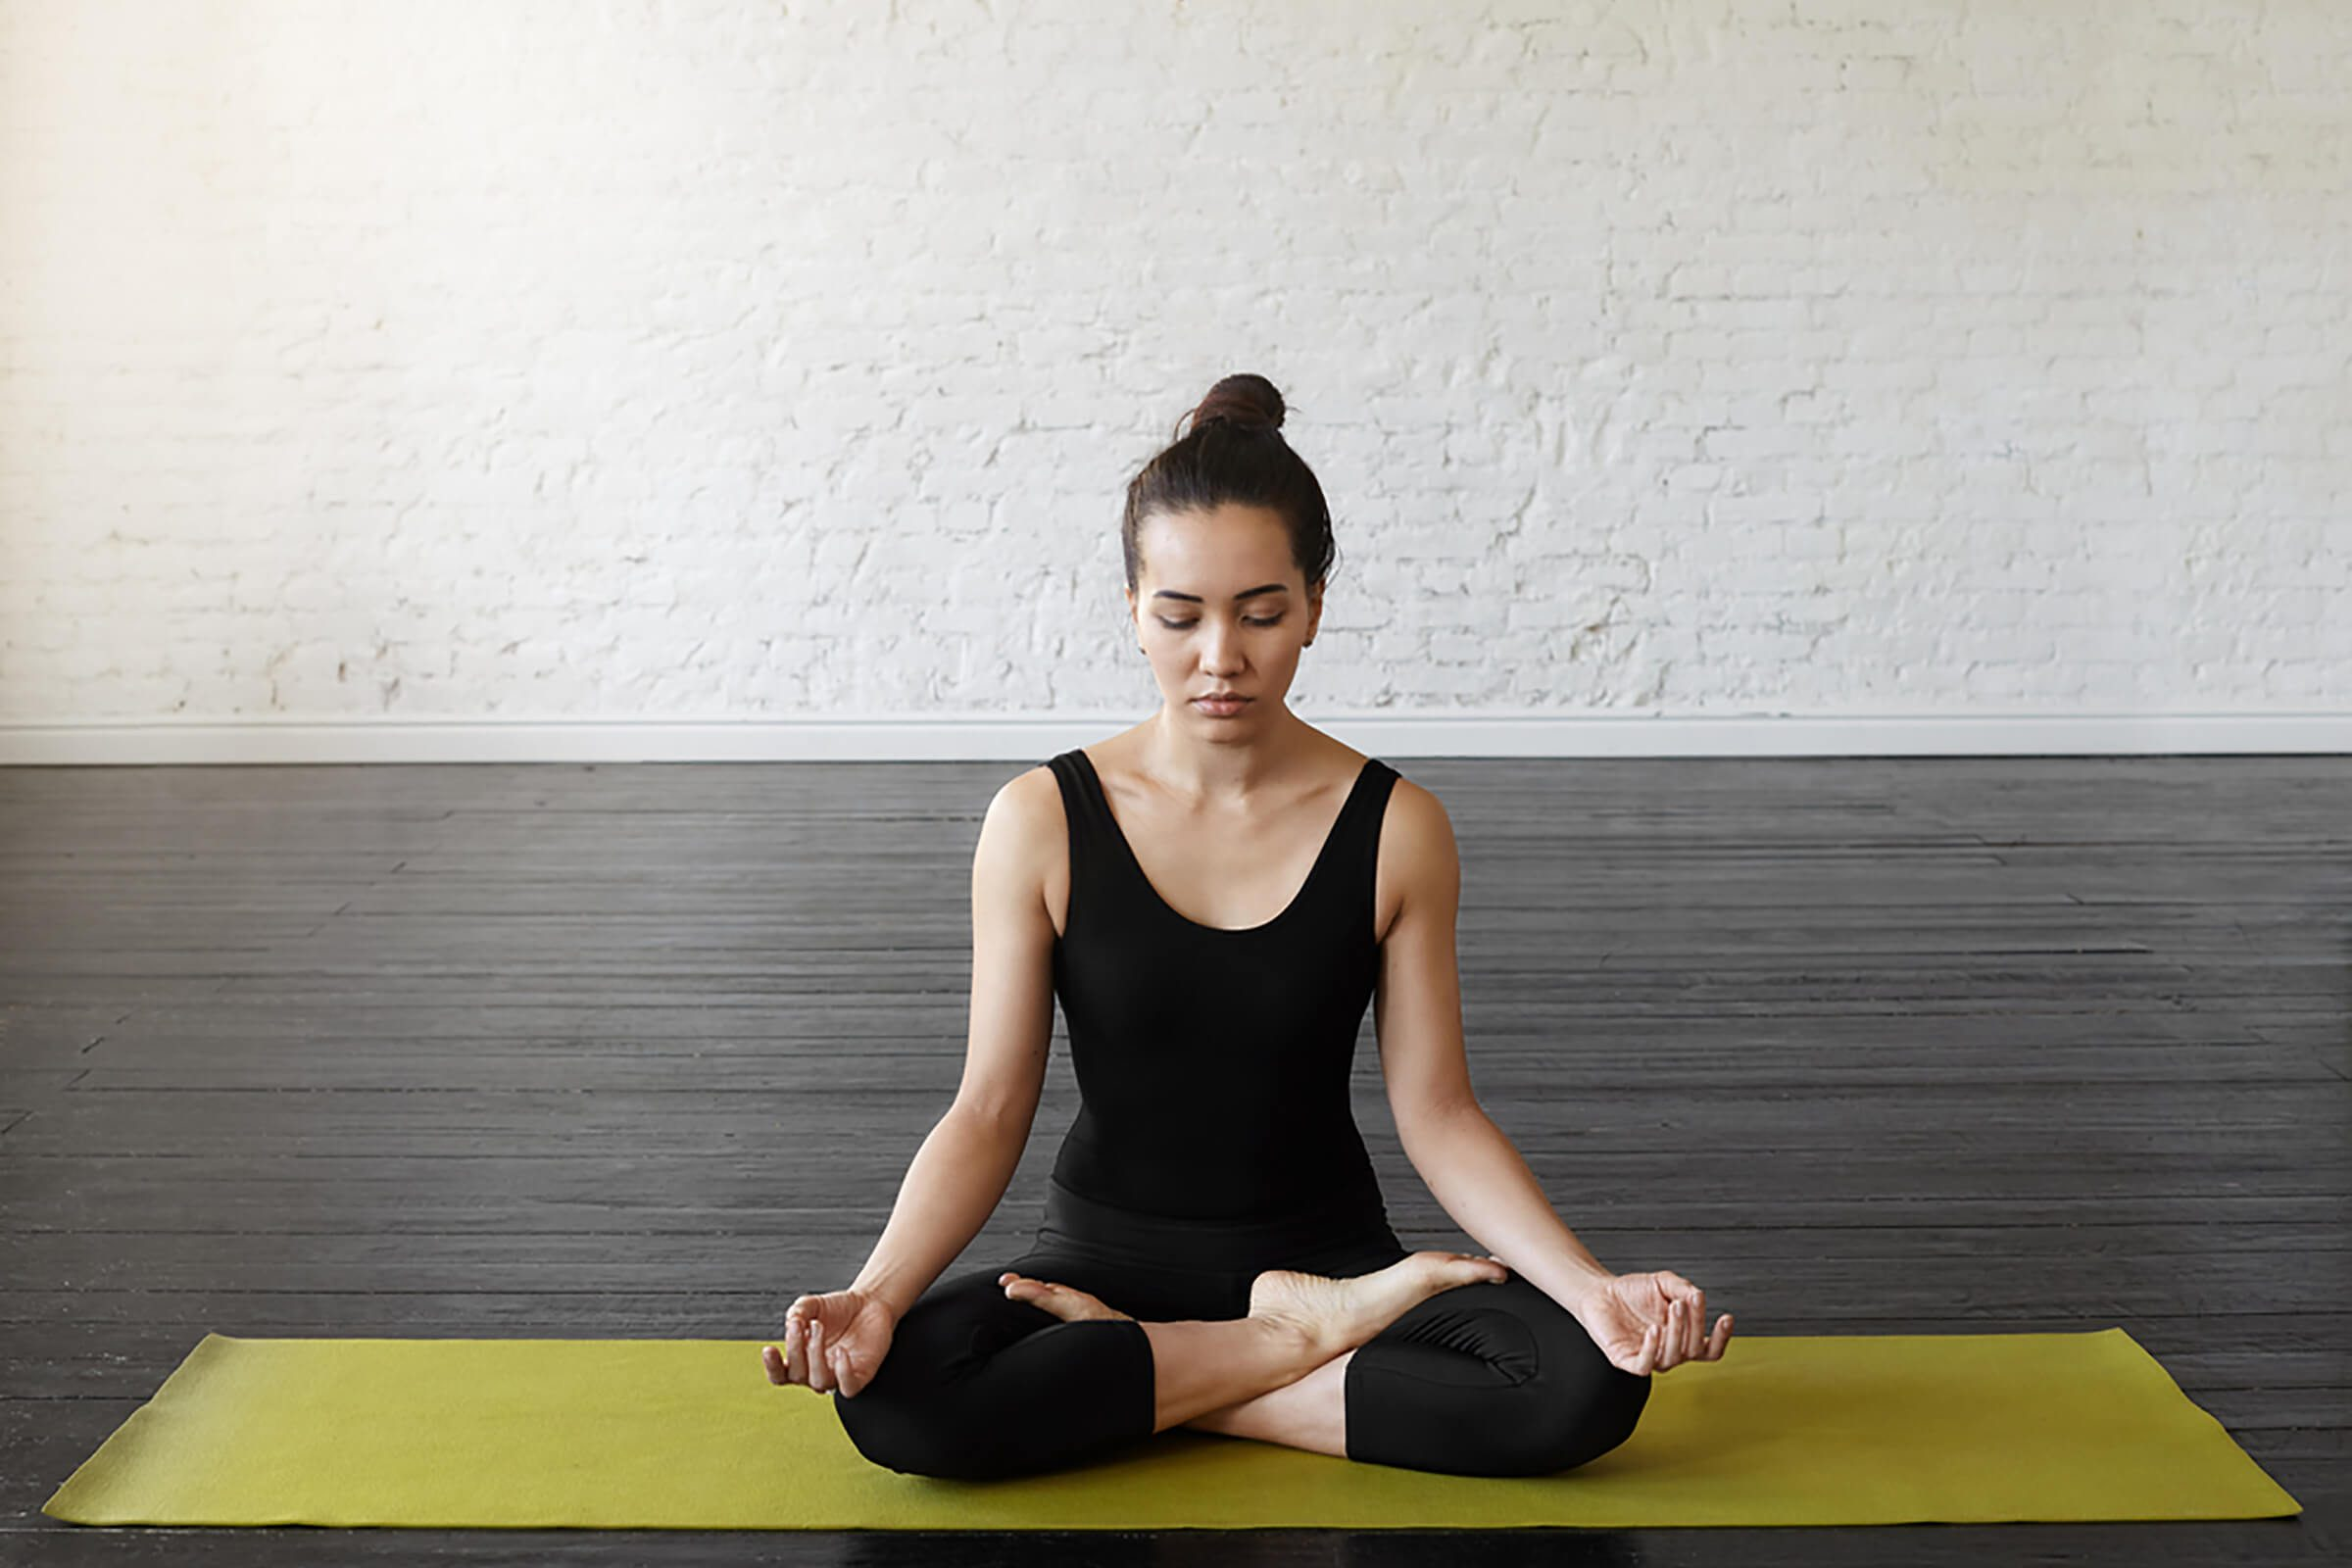 woman doing meditation exercise on mat